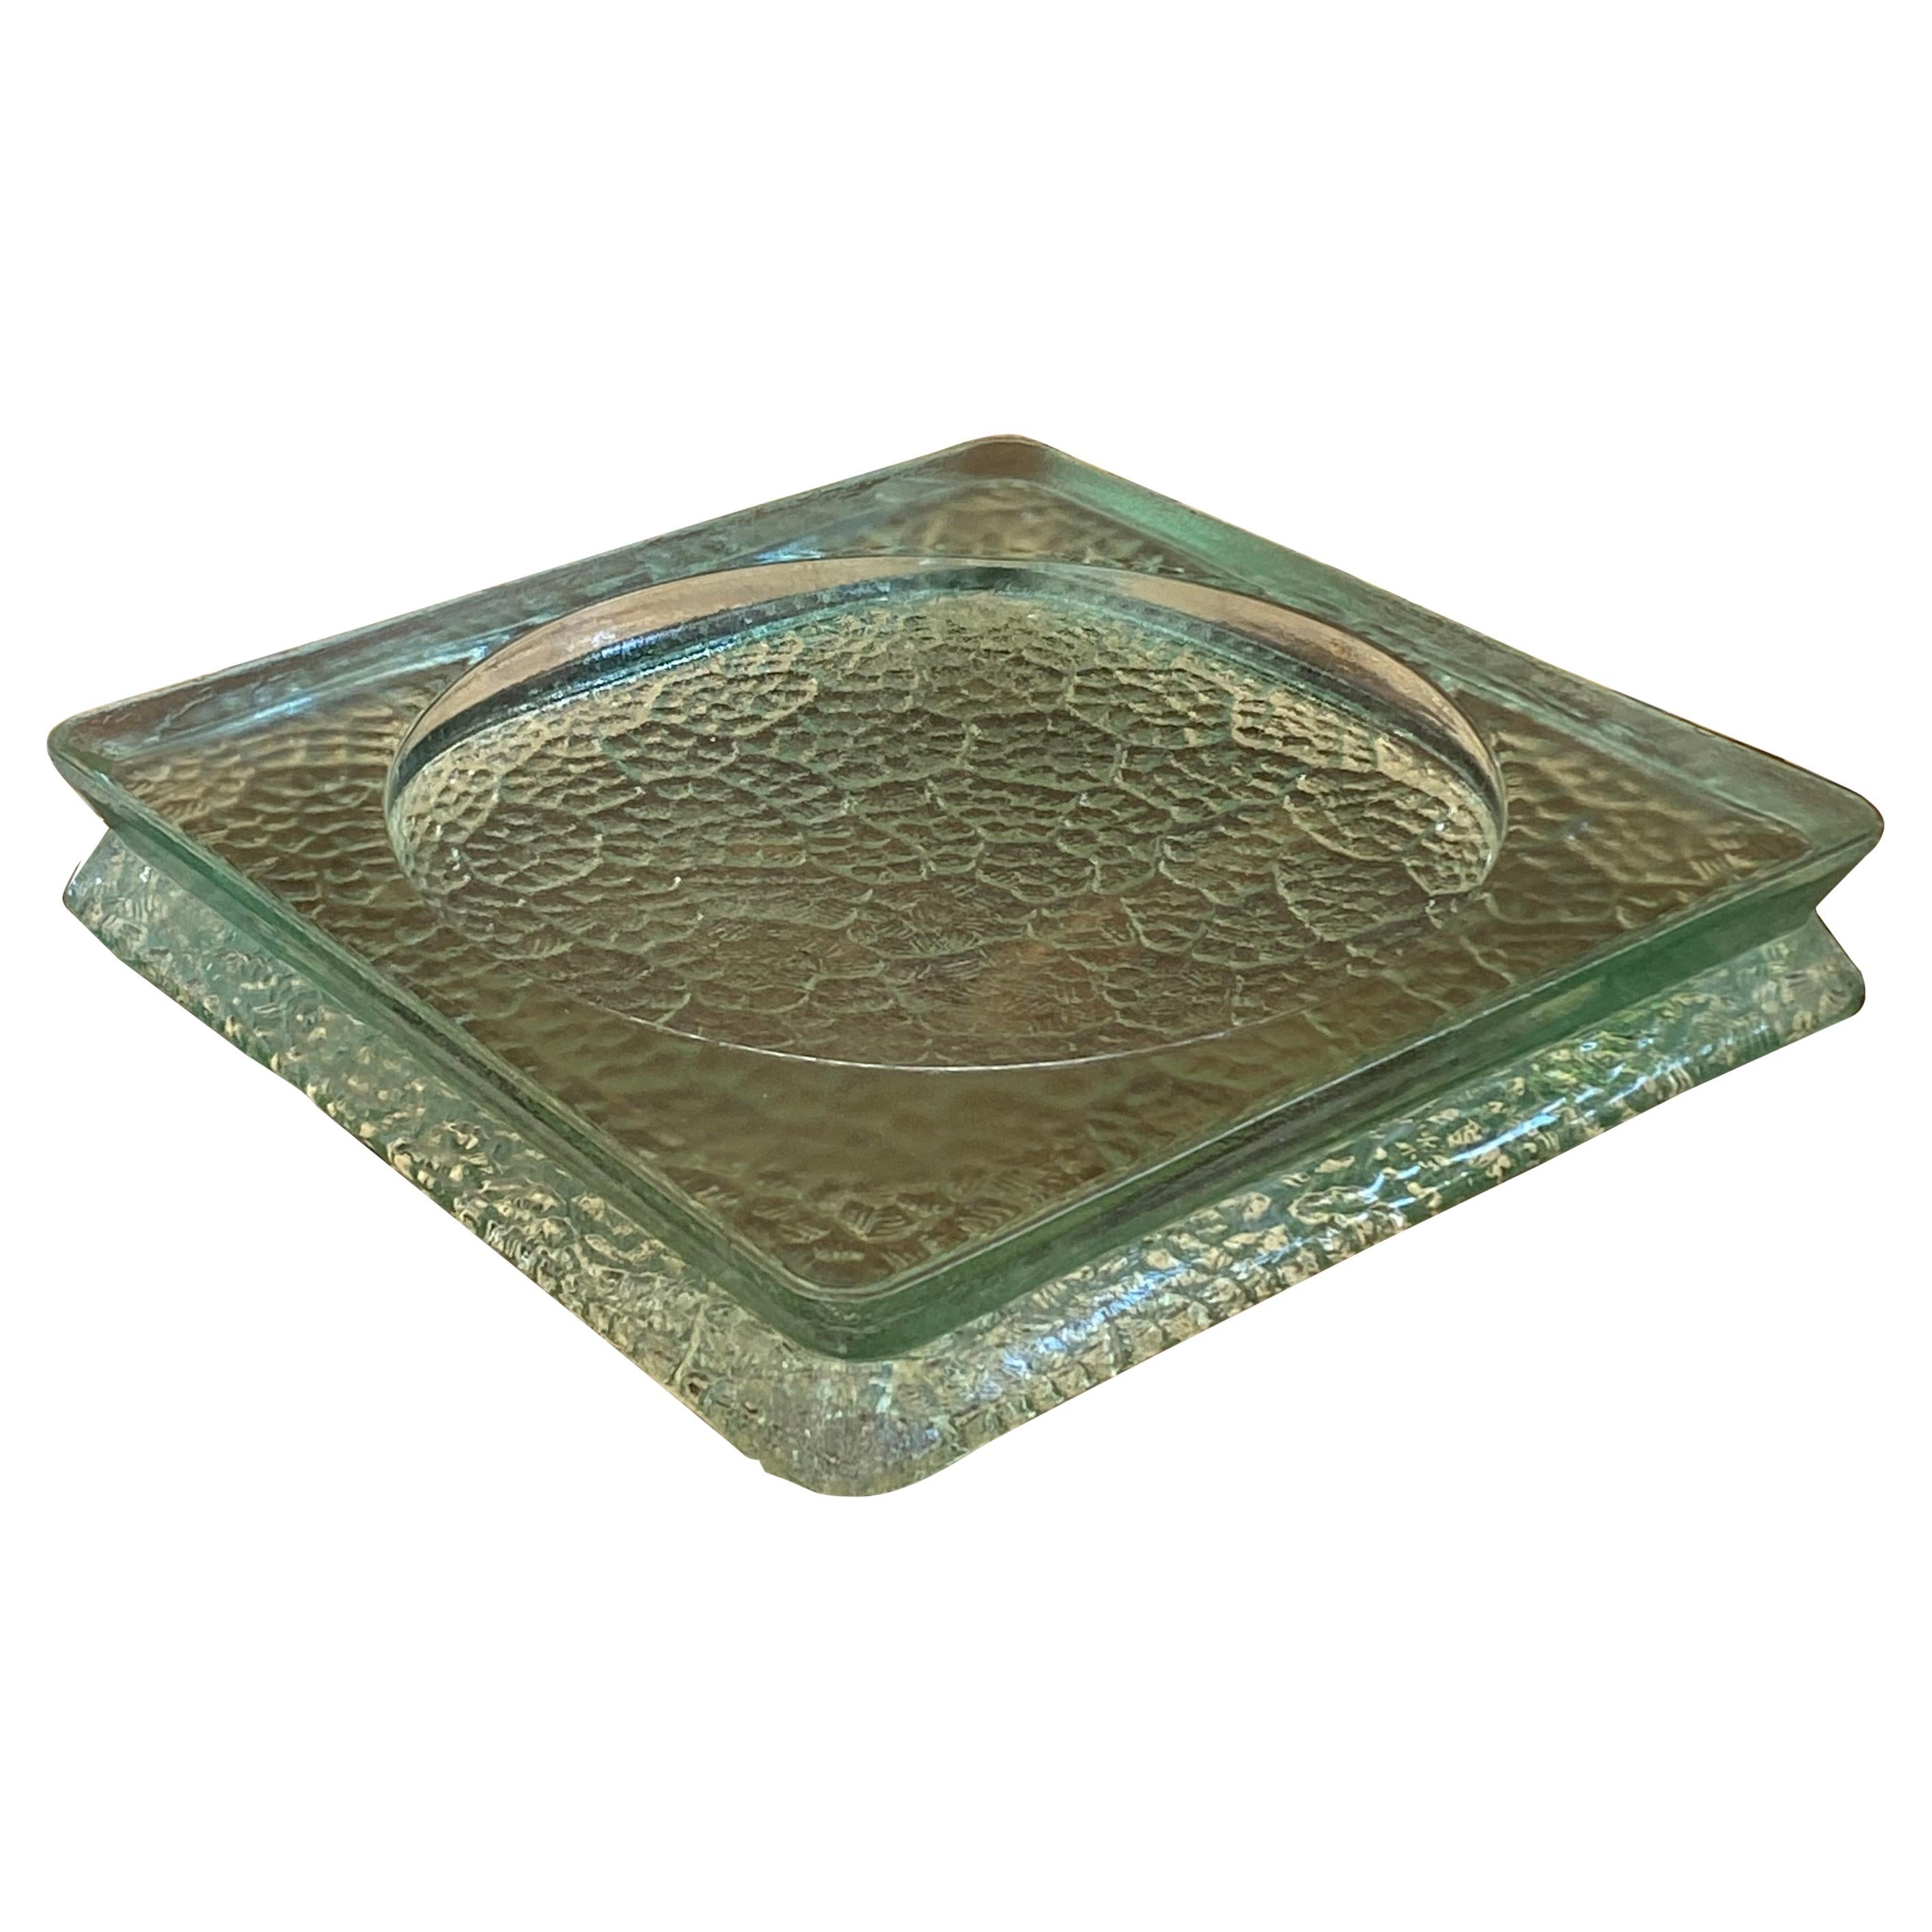 Vide Poche or Ashtray in Bubled Glass, France 1950, Saint Gobain Style